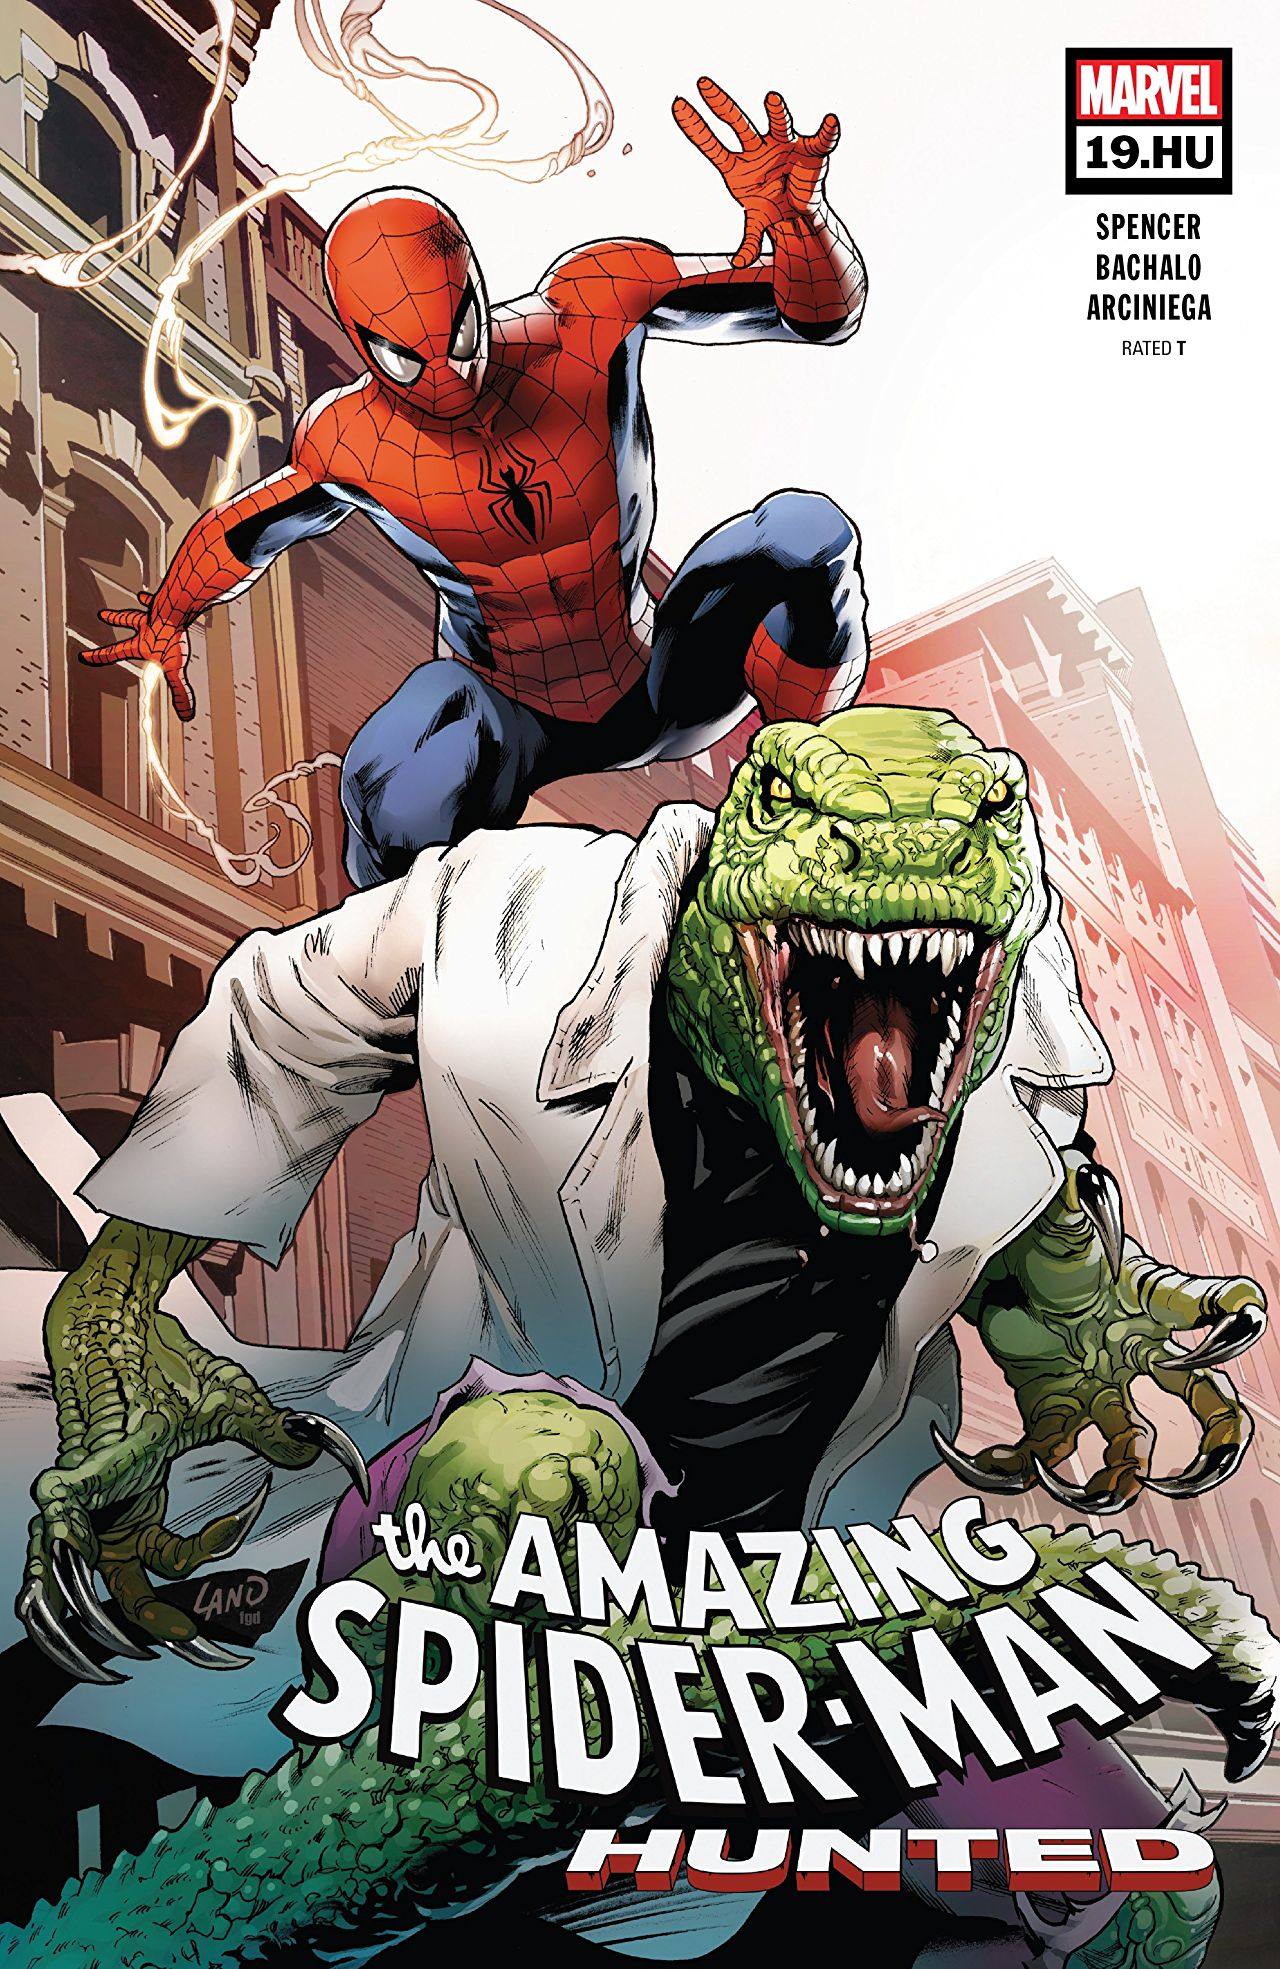 The Amazing Spider-Man 19.1 - Issue #19.HU